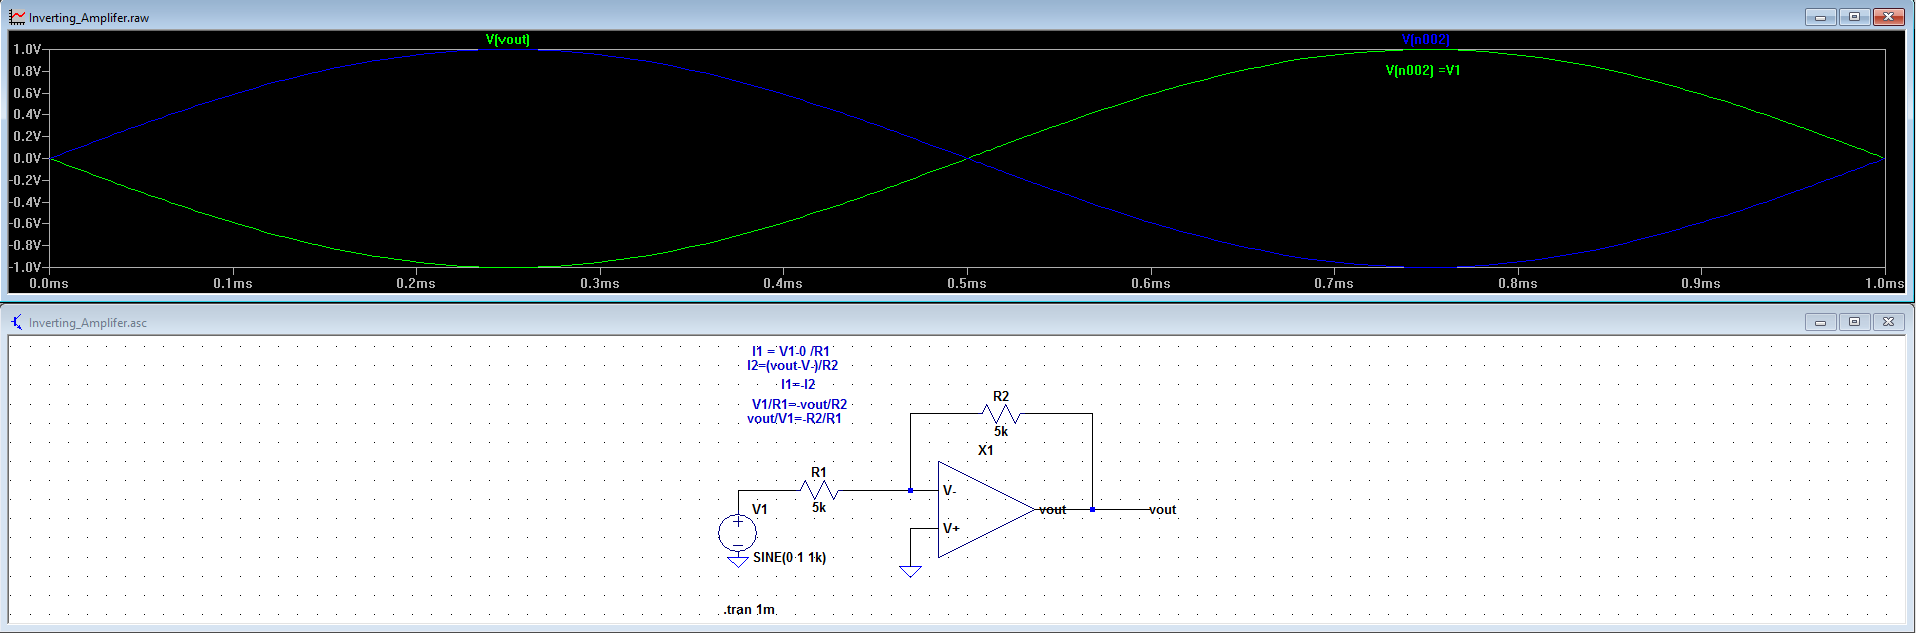 Introduction To Operational Amplifiers With Ltspice Practical Inverting Amplifier Using 741 Project The Summing